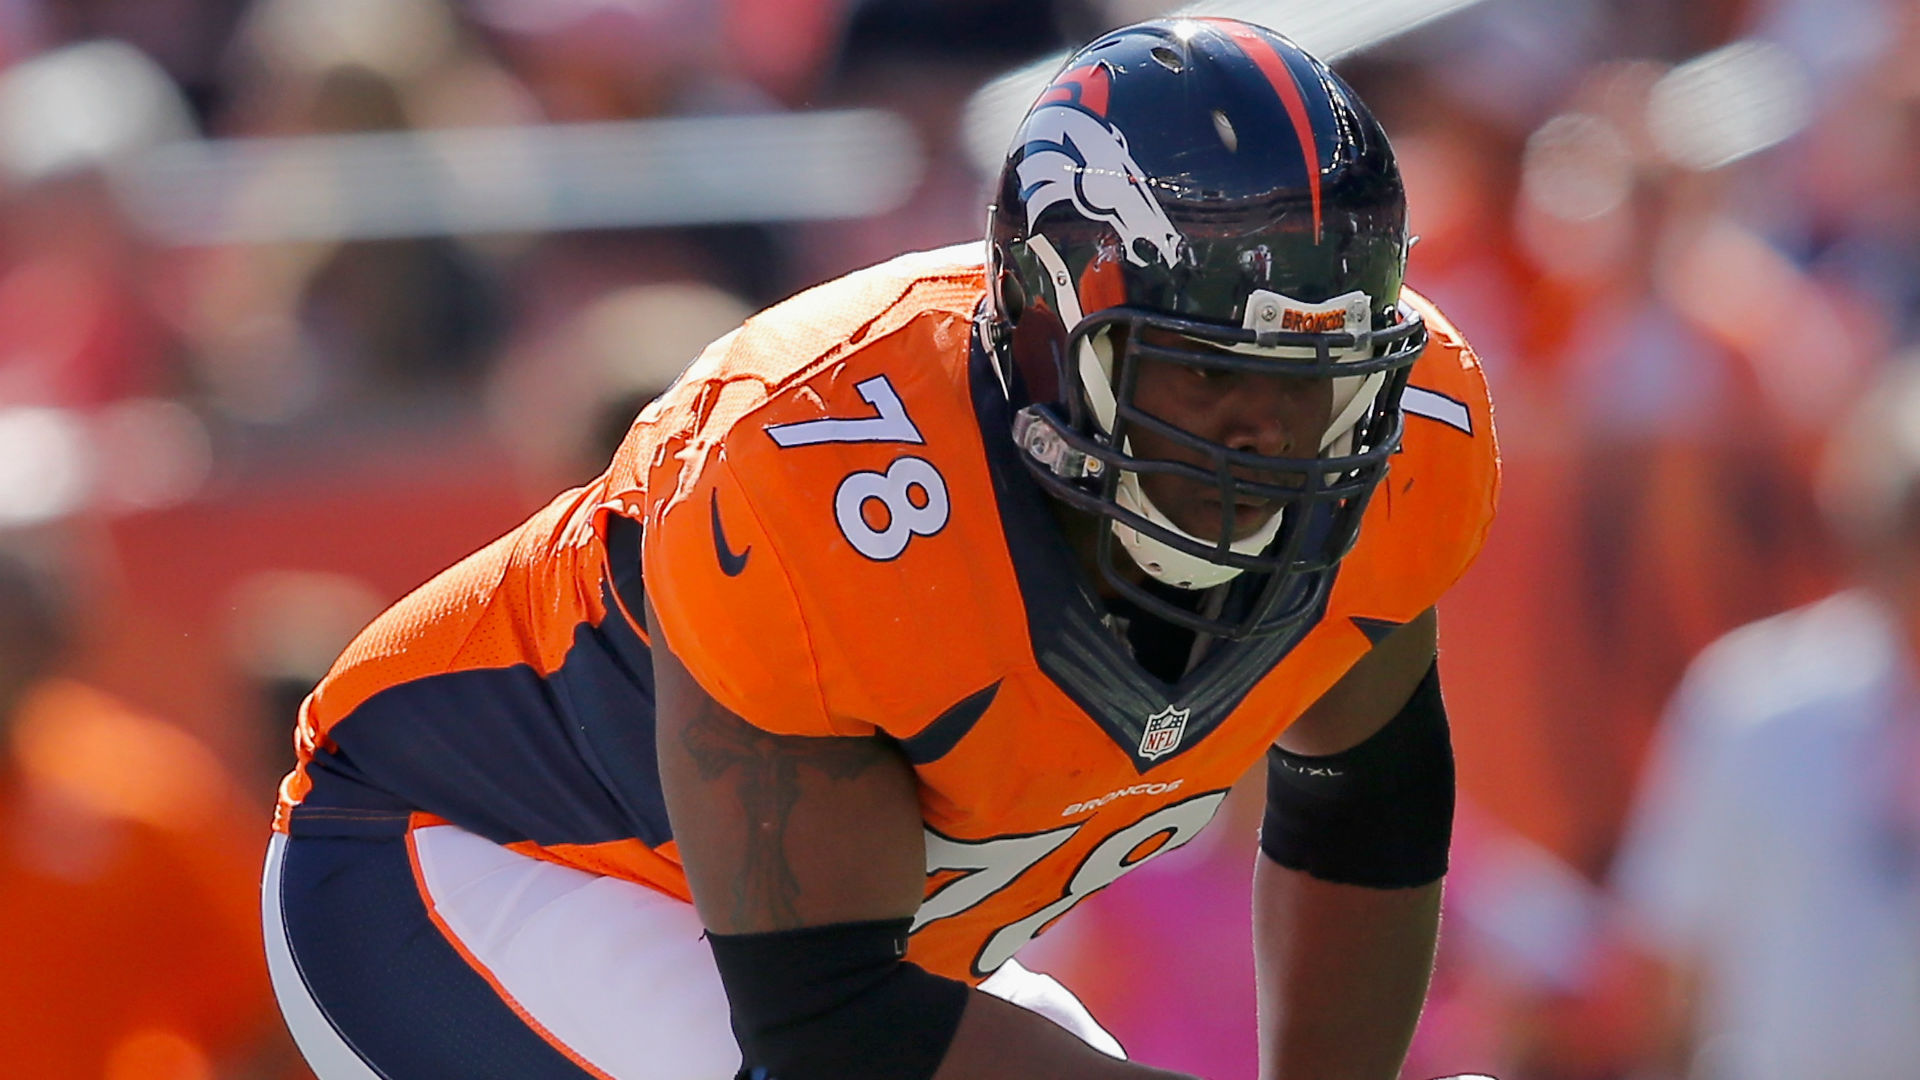 Former Broncos Offensive Tackle Ryan Clady Retires After Nine-Year Career